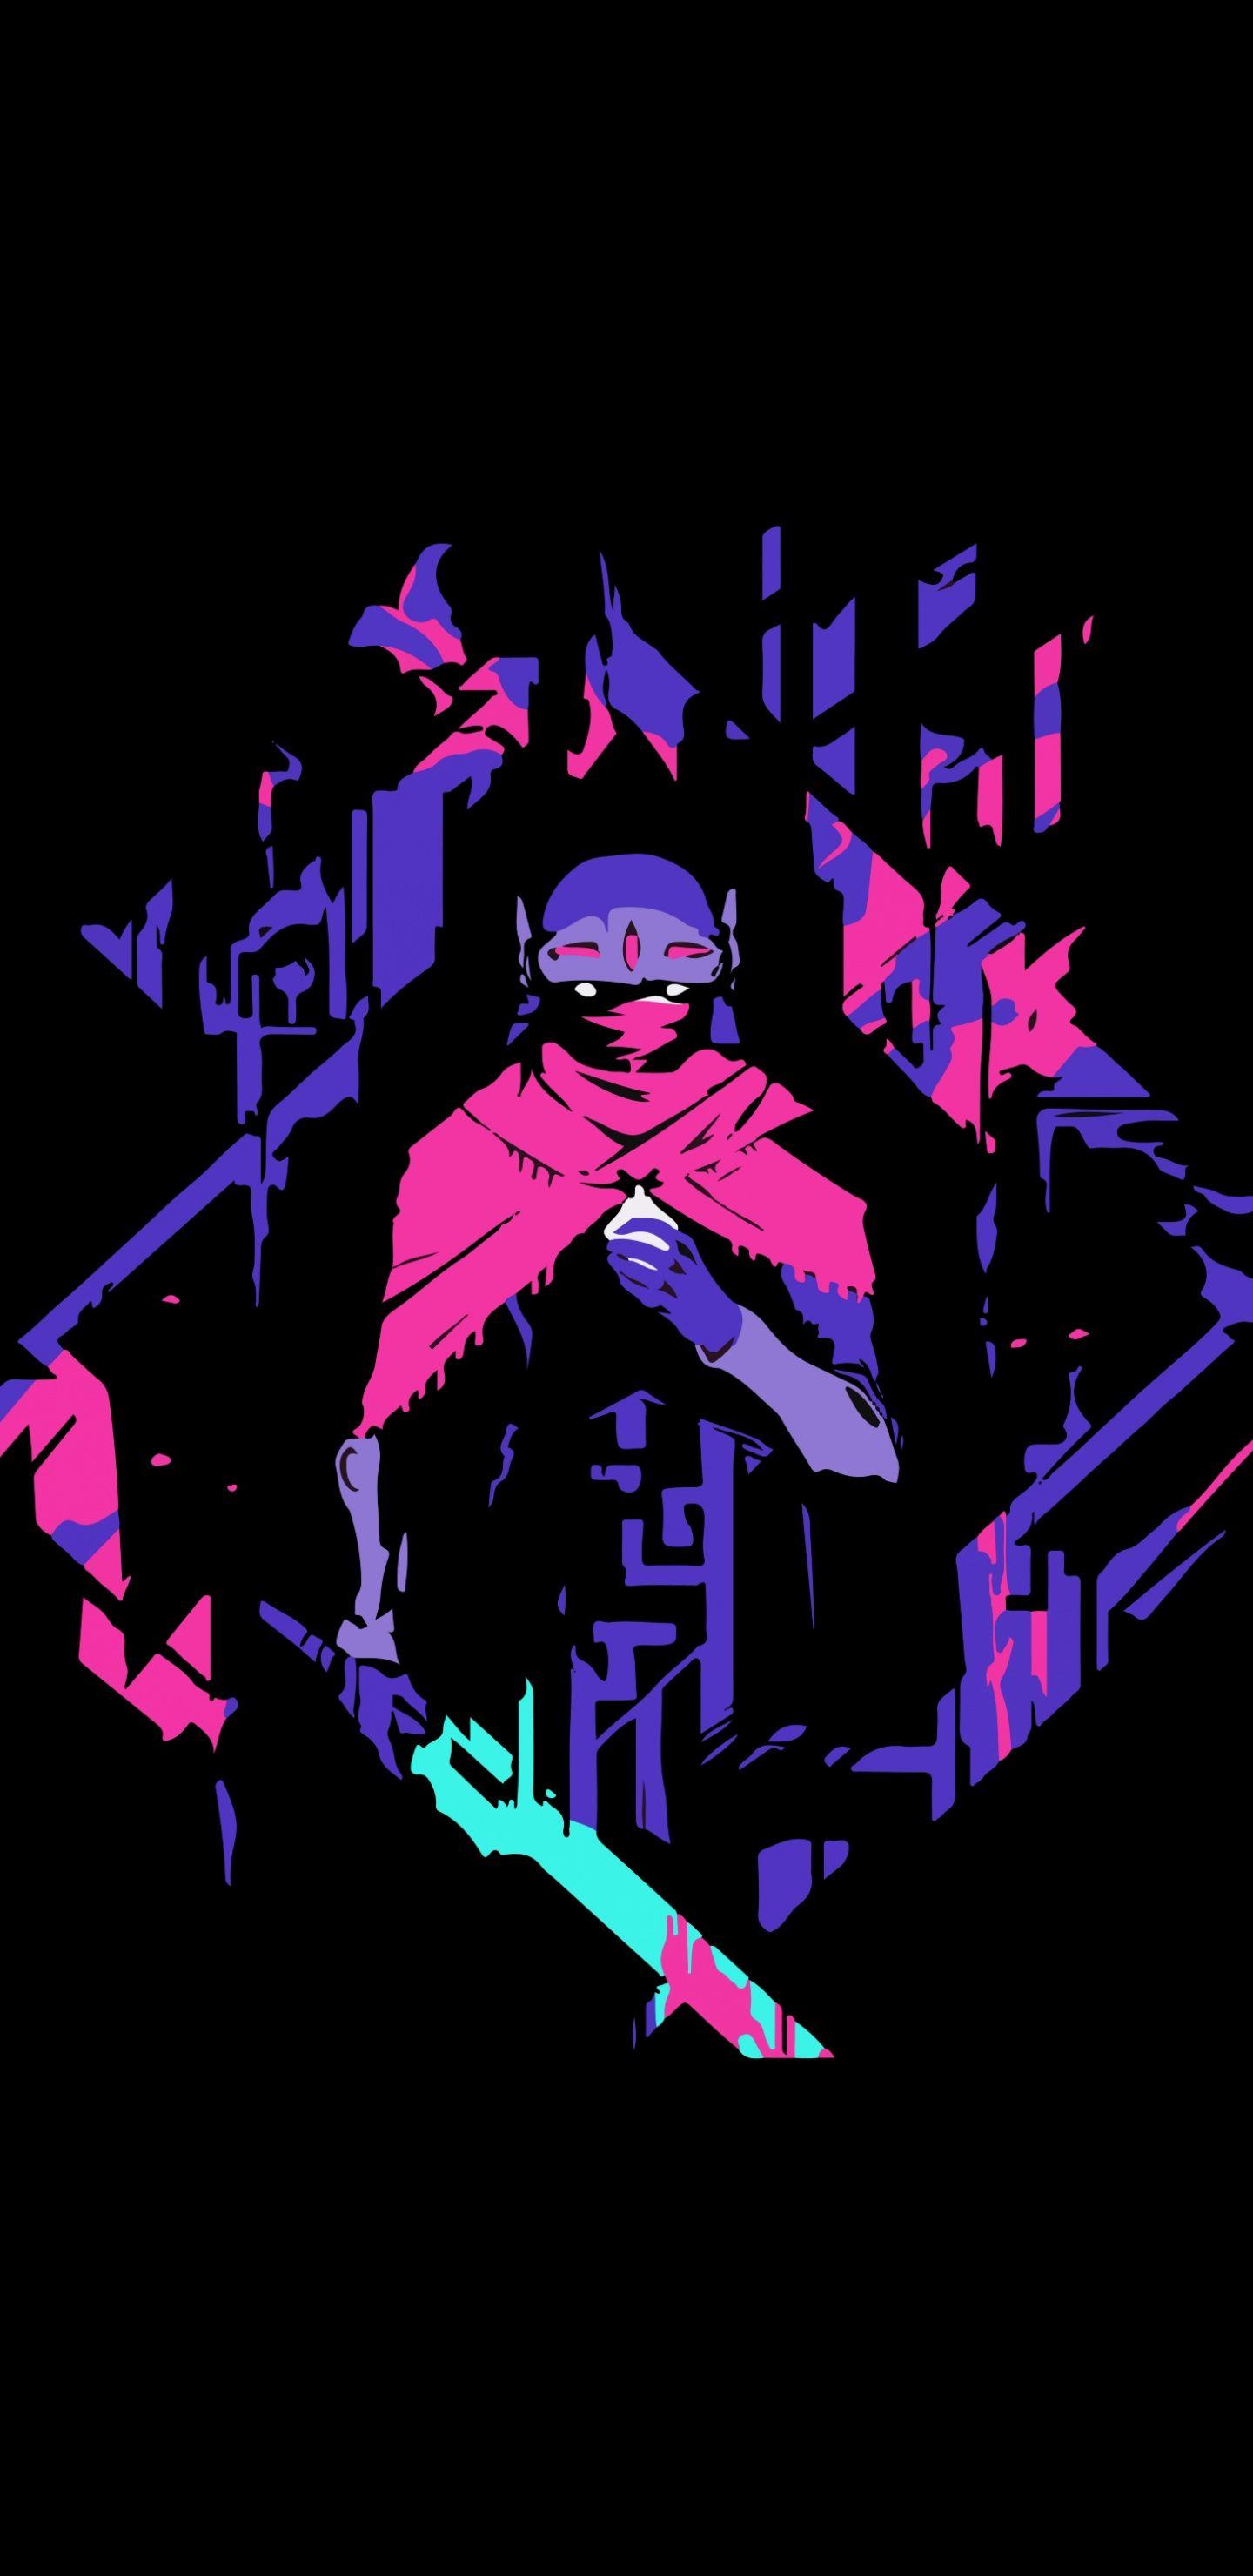 1440x2960 Hyper Light Drifter Minimal Computer Game Wallpaper Hyper Light Drifter Wallpaper Pixel Art Destiny Wallpaper Hd